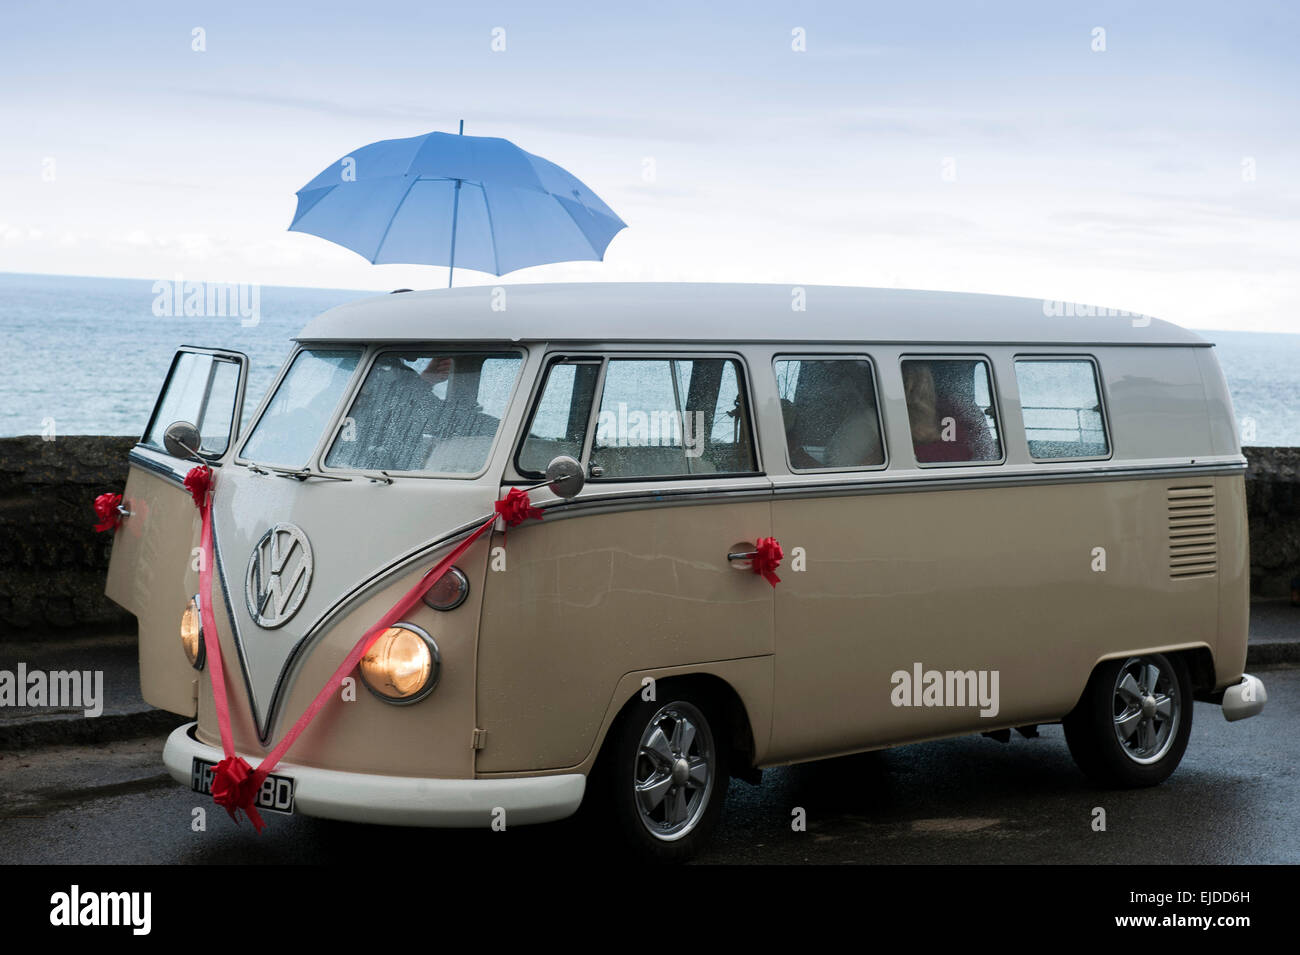 Vintage Volkswagen VW Bus ca. 1965 decorated for a wedding on a rainy day in St. Ives Cornwall England UK Europe - Stock Image